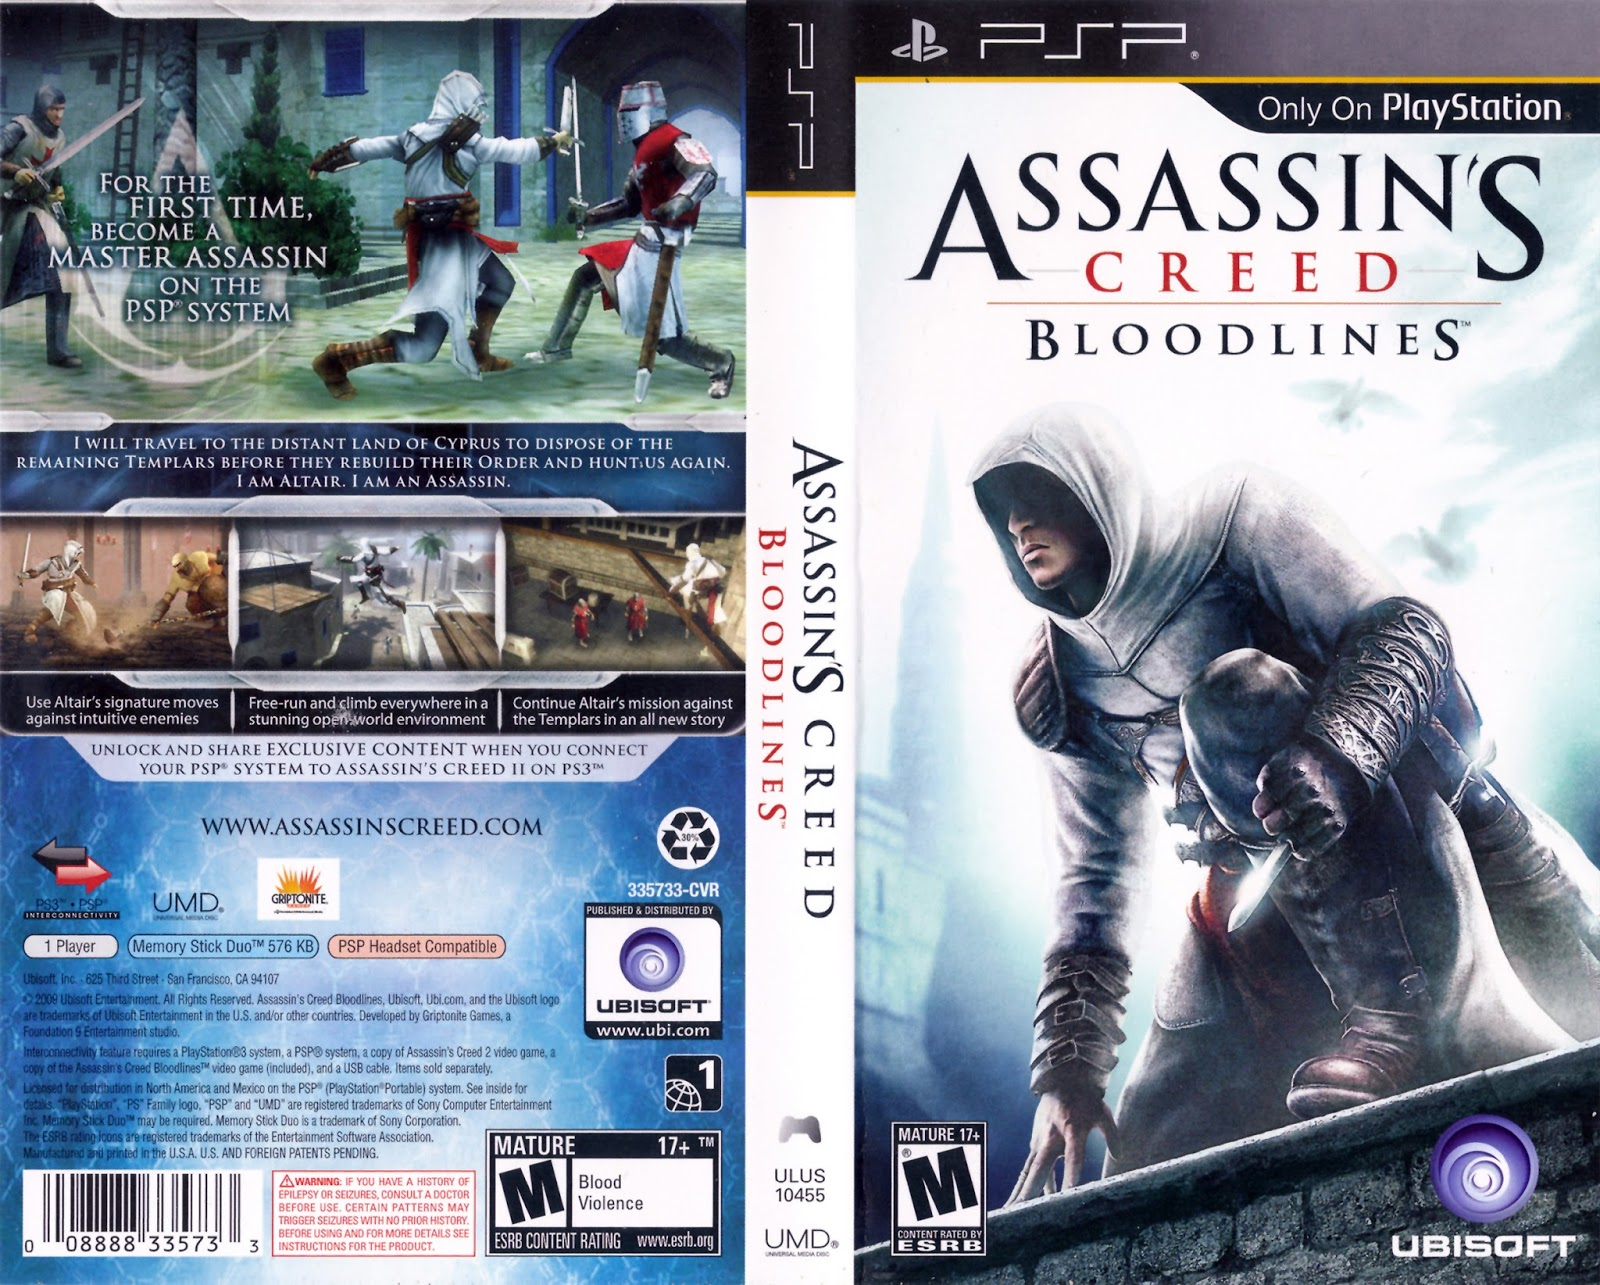 Assassins Creed Bloodlines Ppsspp Helper